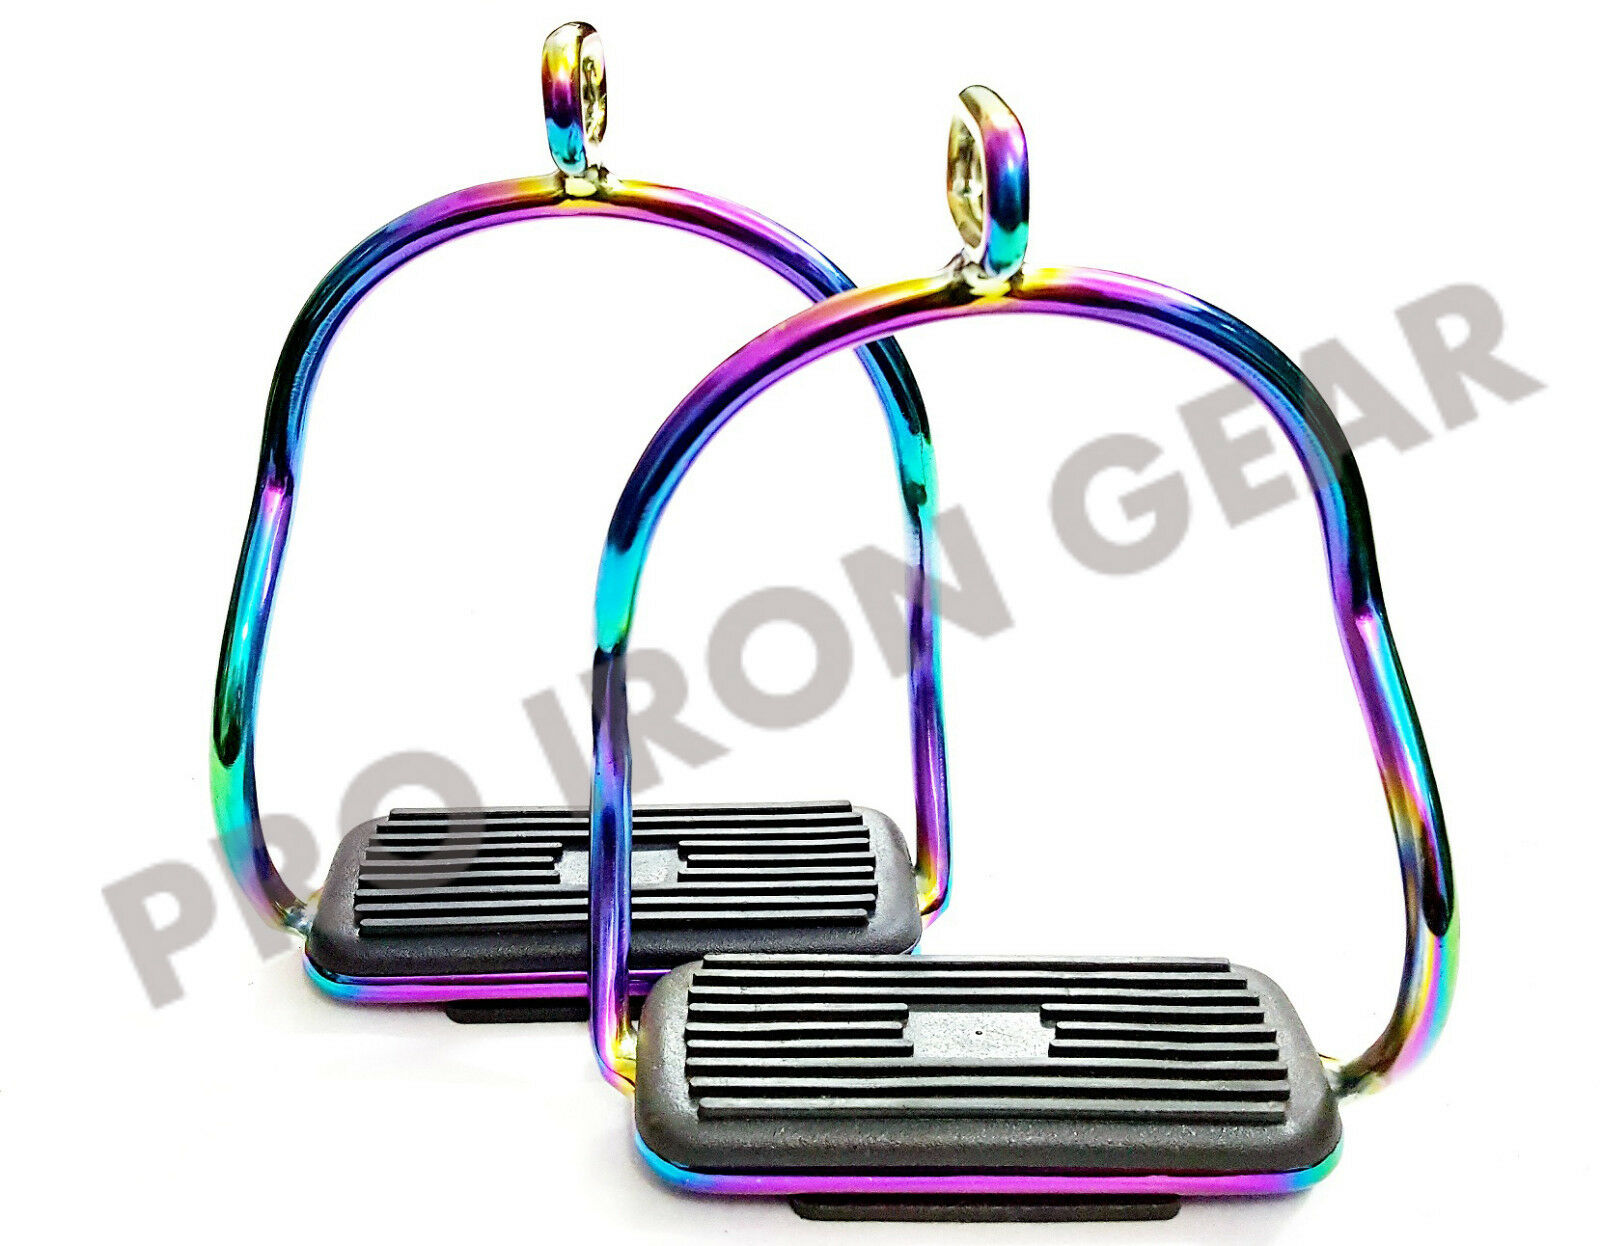 RAINBOW ALUMINUM DOUBLE BENT STIRRUPS HORSE RIDING STAINLESS STEEL